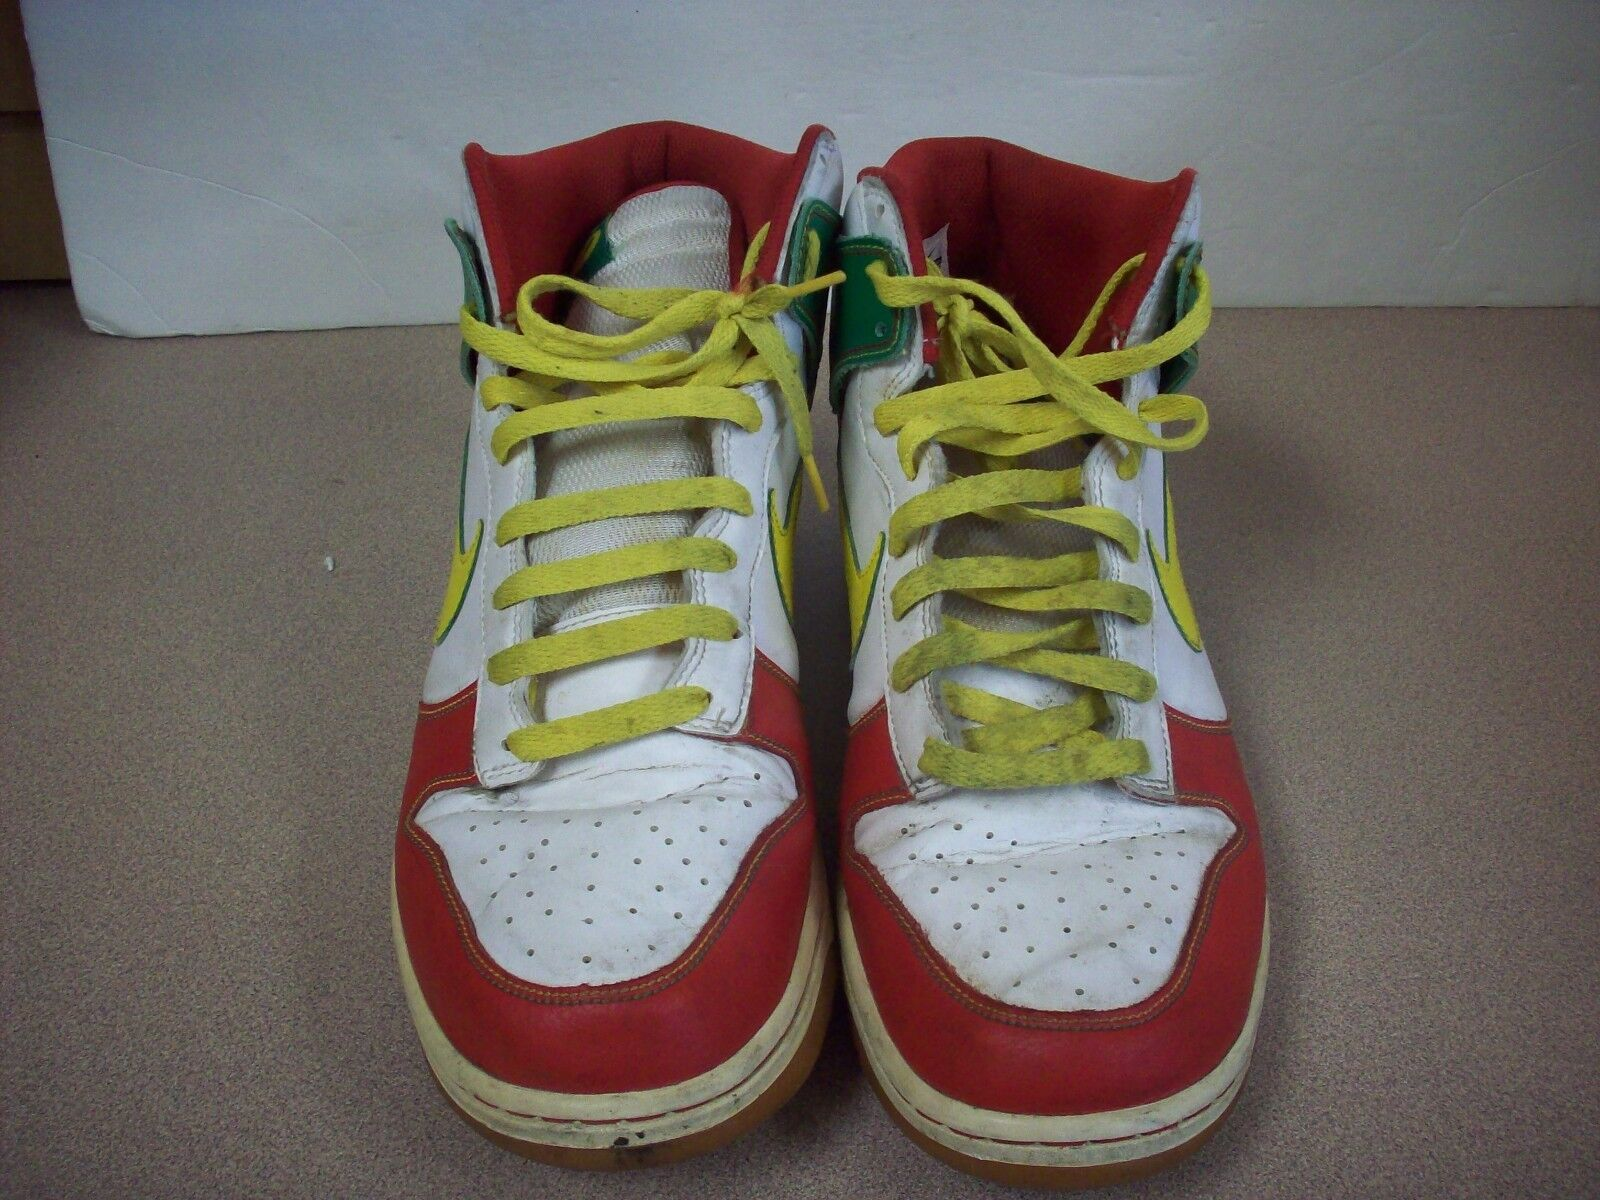 Nike Dunk High shoes, Size 12, Red  White  Yellow  Green